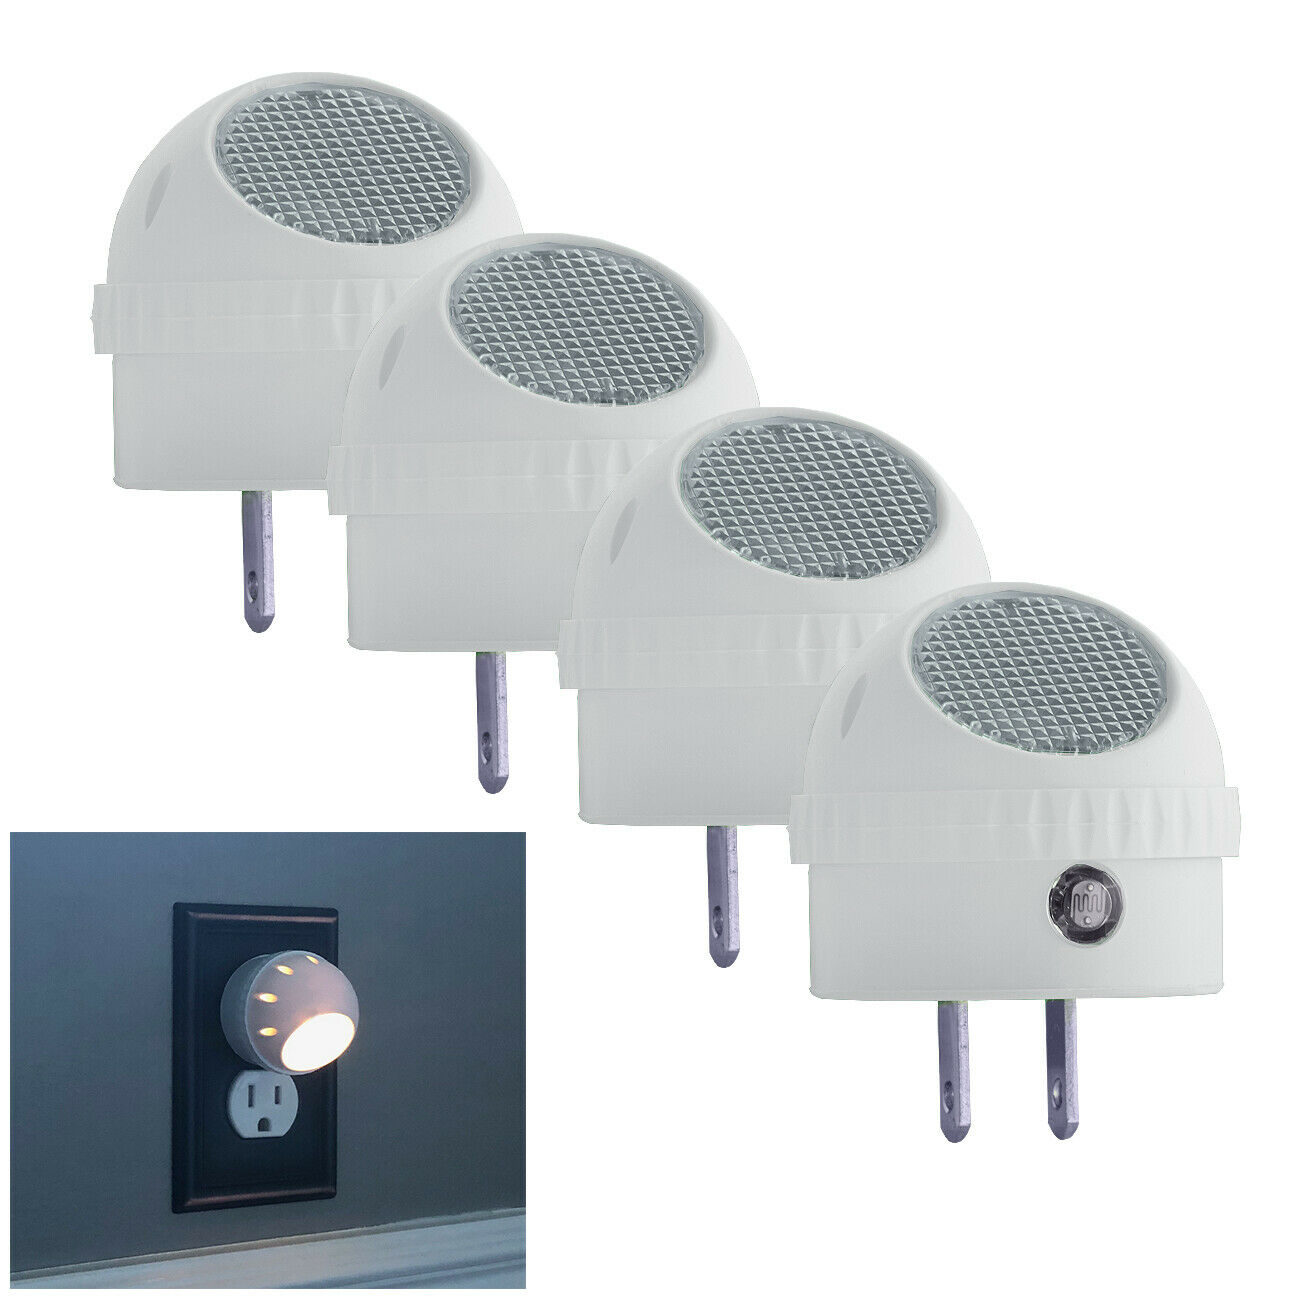 4 Pack LED Night Light Plug in with Auto Sensor Photocell, W